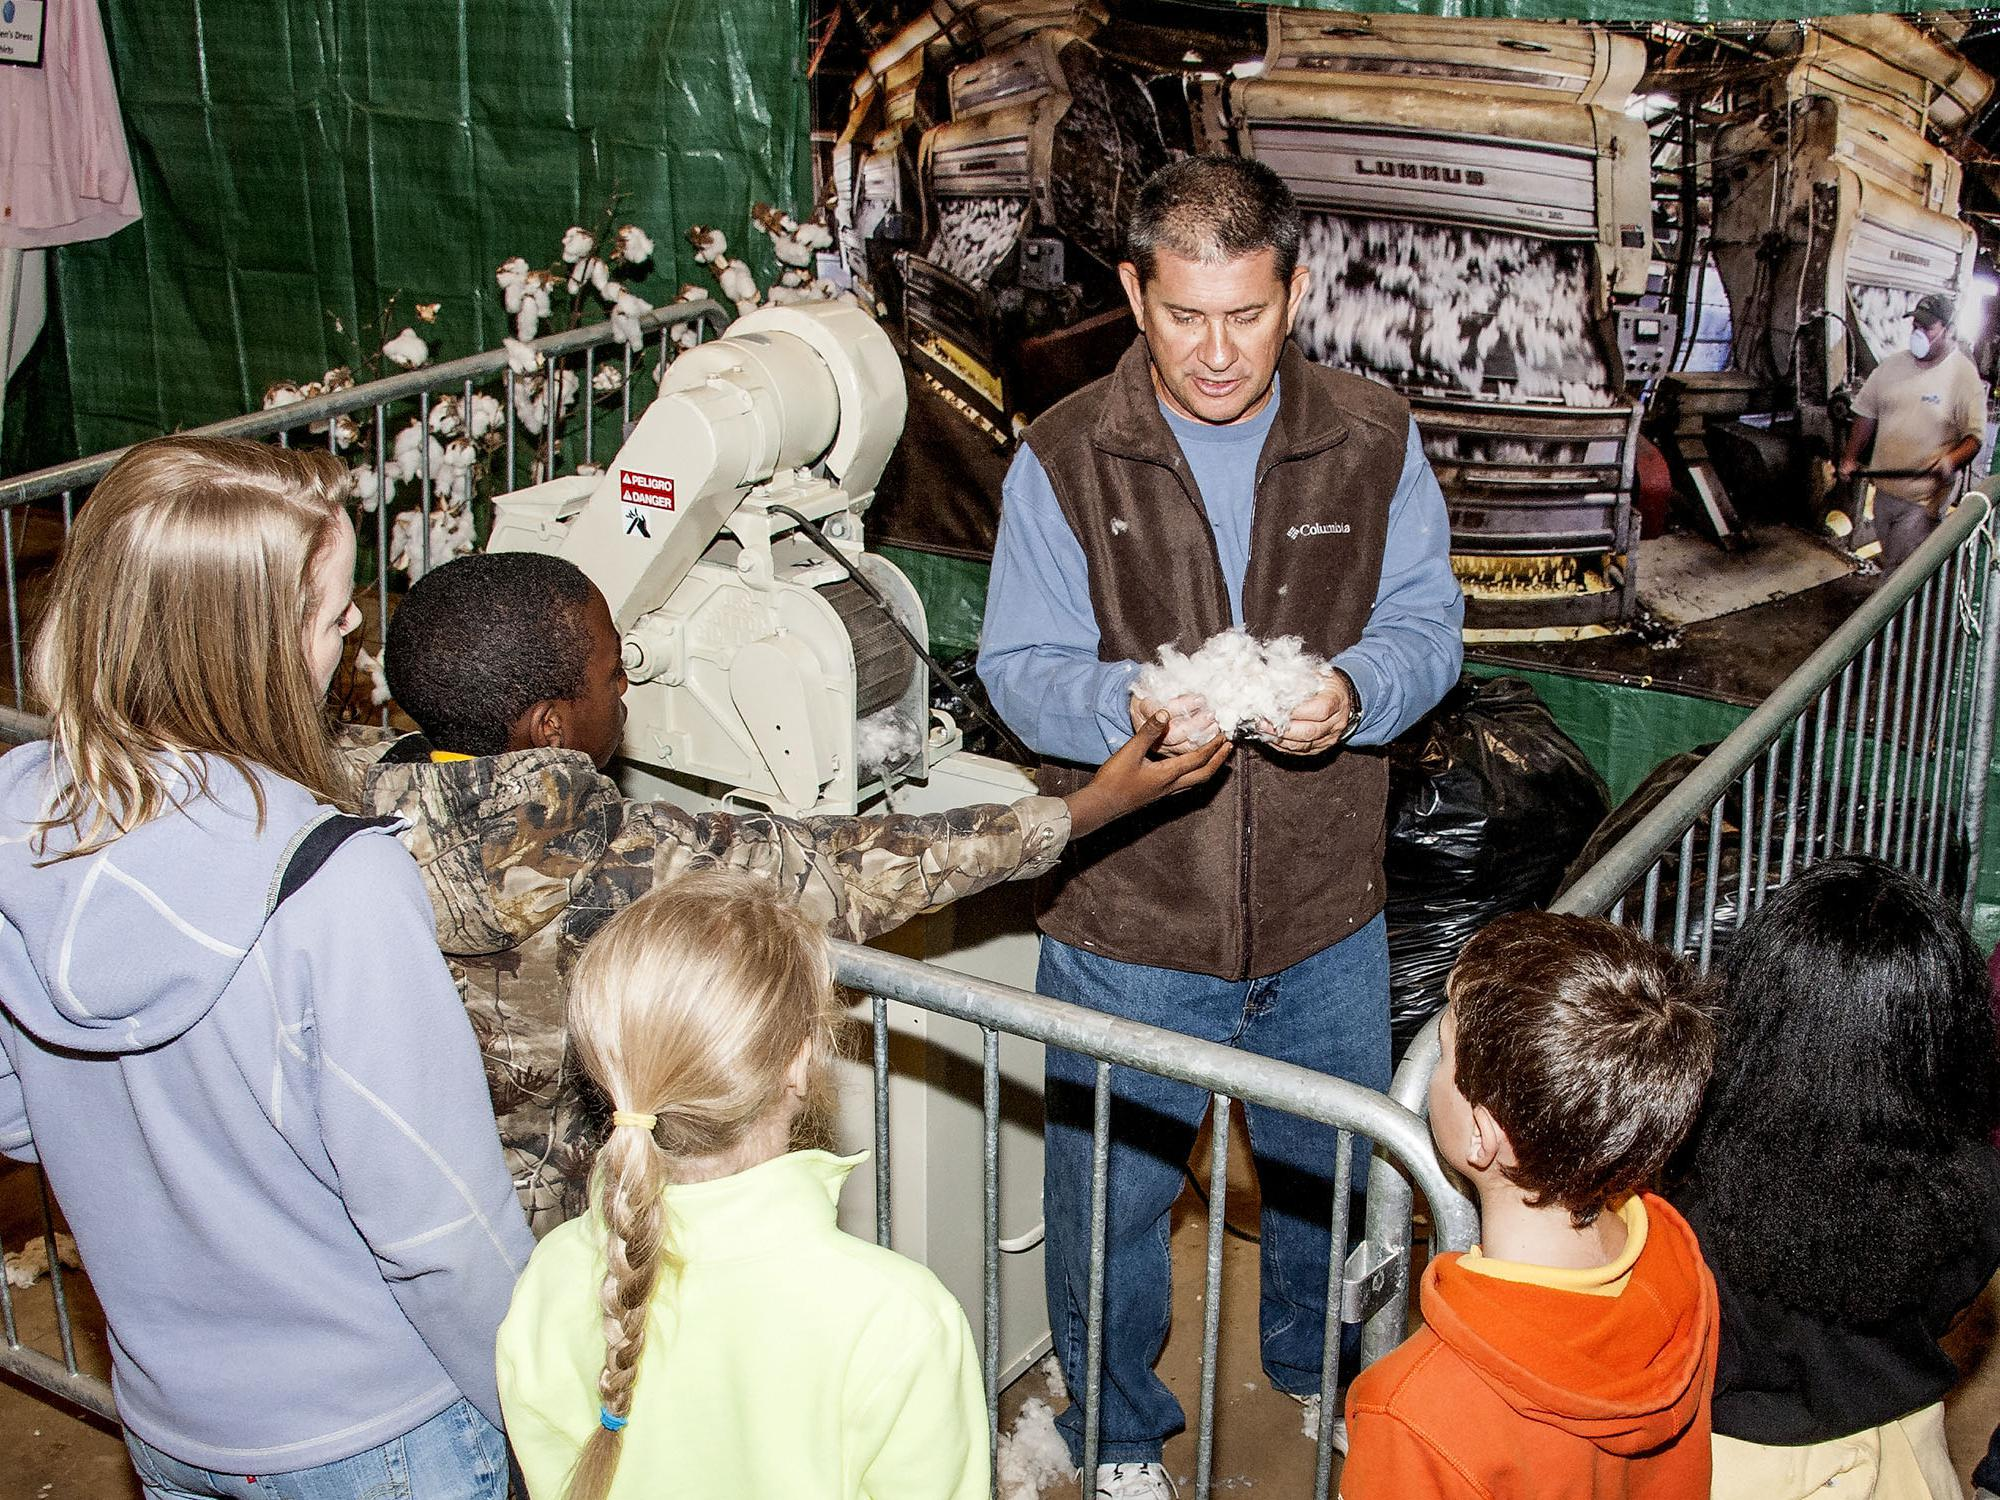 Dennis Reginelli, an area agronomic crops agent with the Mississippi State University Extension Service, explains the ginning process that helps create cotton fabrics. Addressing primarily third-graders at the Mississippi Horse Park on Nov. 7, 2013, Reginelli and the cotton exhibit were part of Farmtastic, a four-day educational program designed to help children learn the sources of their food, clothing and other products. (Photo by MSU Ag Communications/Scott Corey)